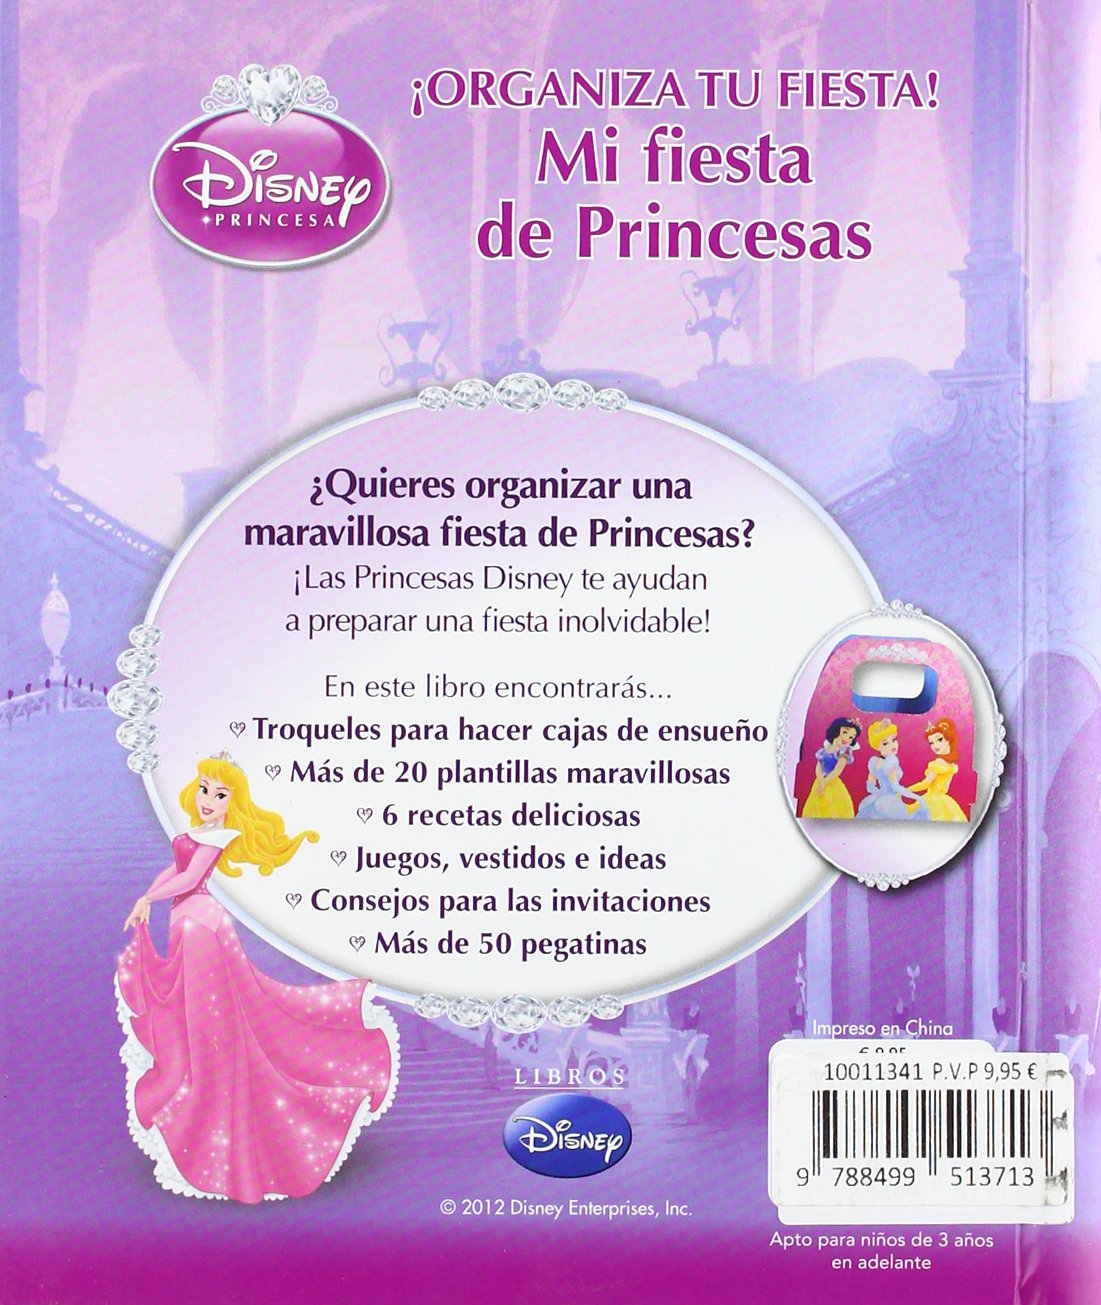 Princesas. Mi fiesta de princesas: Disney: 9788499513713: Amazon.com: Books